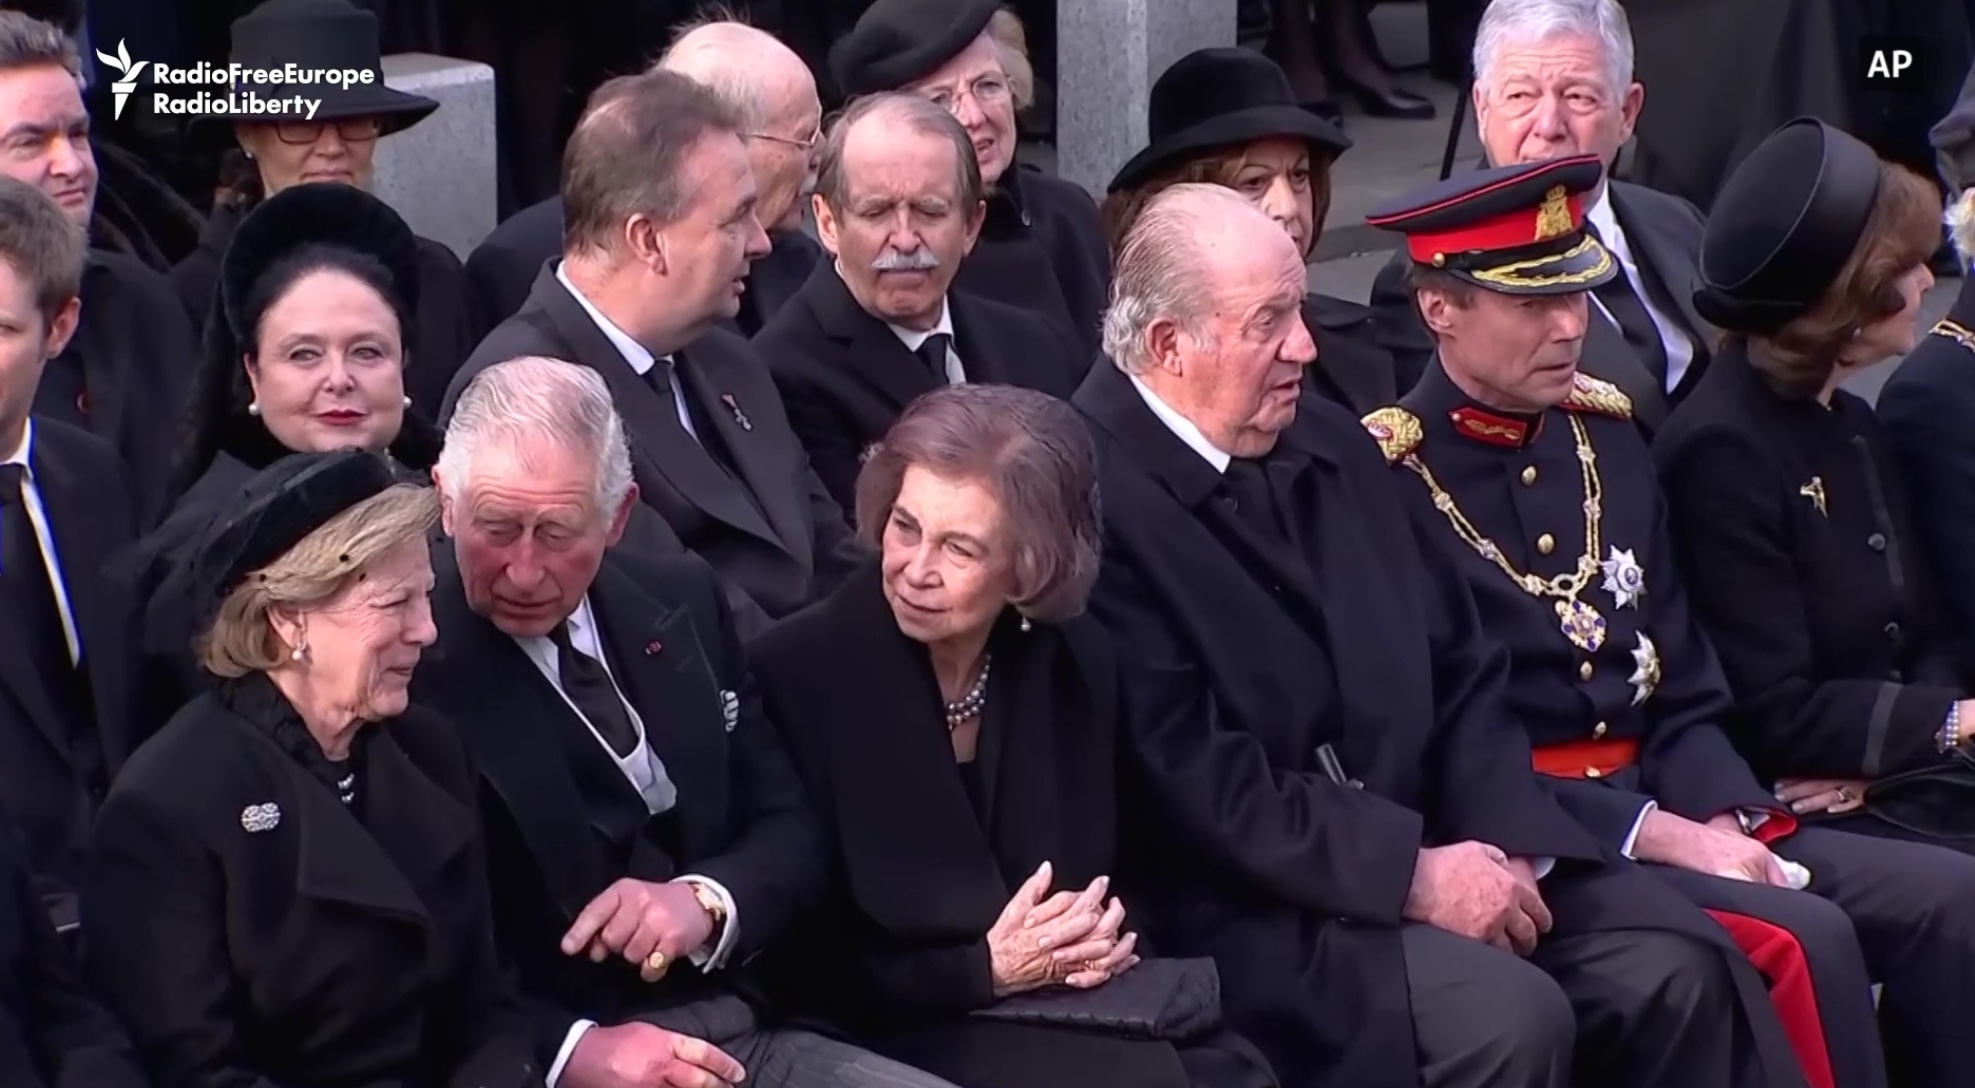 First row, left to right: Queen Anne-Marie of Greece, the Prince of Wales, Queen Sofia of Spain, King Juan Carlos of Spain, Grand Duke Henri of Luxembourg, Queen Silvia of Sweden and (ear showing) King Carl Gustaf of Sweden.  (Reigning royal houses, plus somebody who had once reigned: Queen Anne-Marie of Greece.)  Second row, left to right: The heads of dynasties that no longer reign: the head of the Russian Imperial House (Grand Duchess Maria), the head of the Austrian-Hungarian Imperial House (Archduke Karl), the head of the Portuguese Royal House (Infante Dom Duarte), the Crown Princess of Serbia, and the head of the Serbian Royal House (Crown Prince Alexander of Yugoslavia).